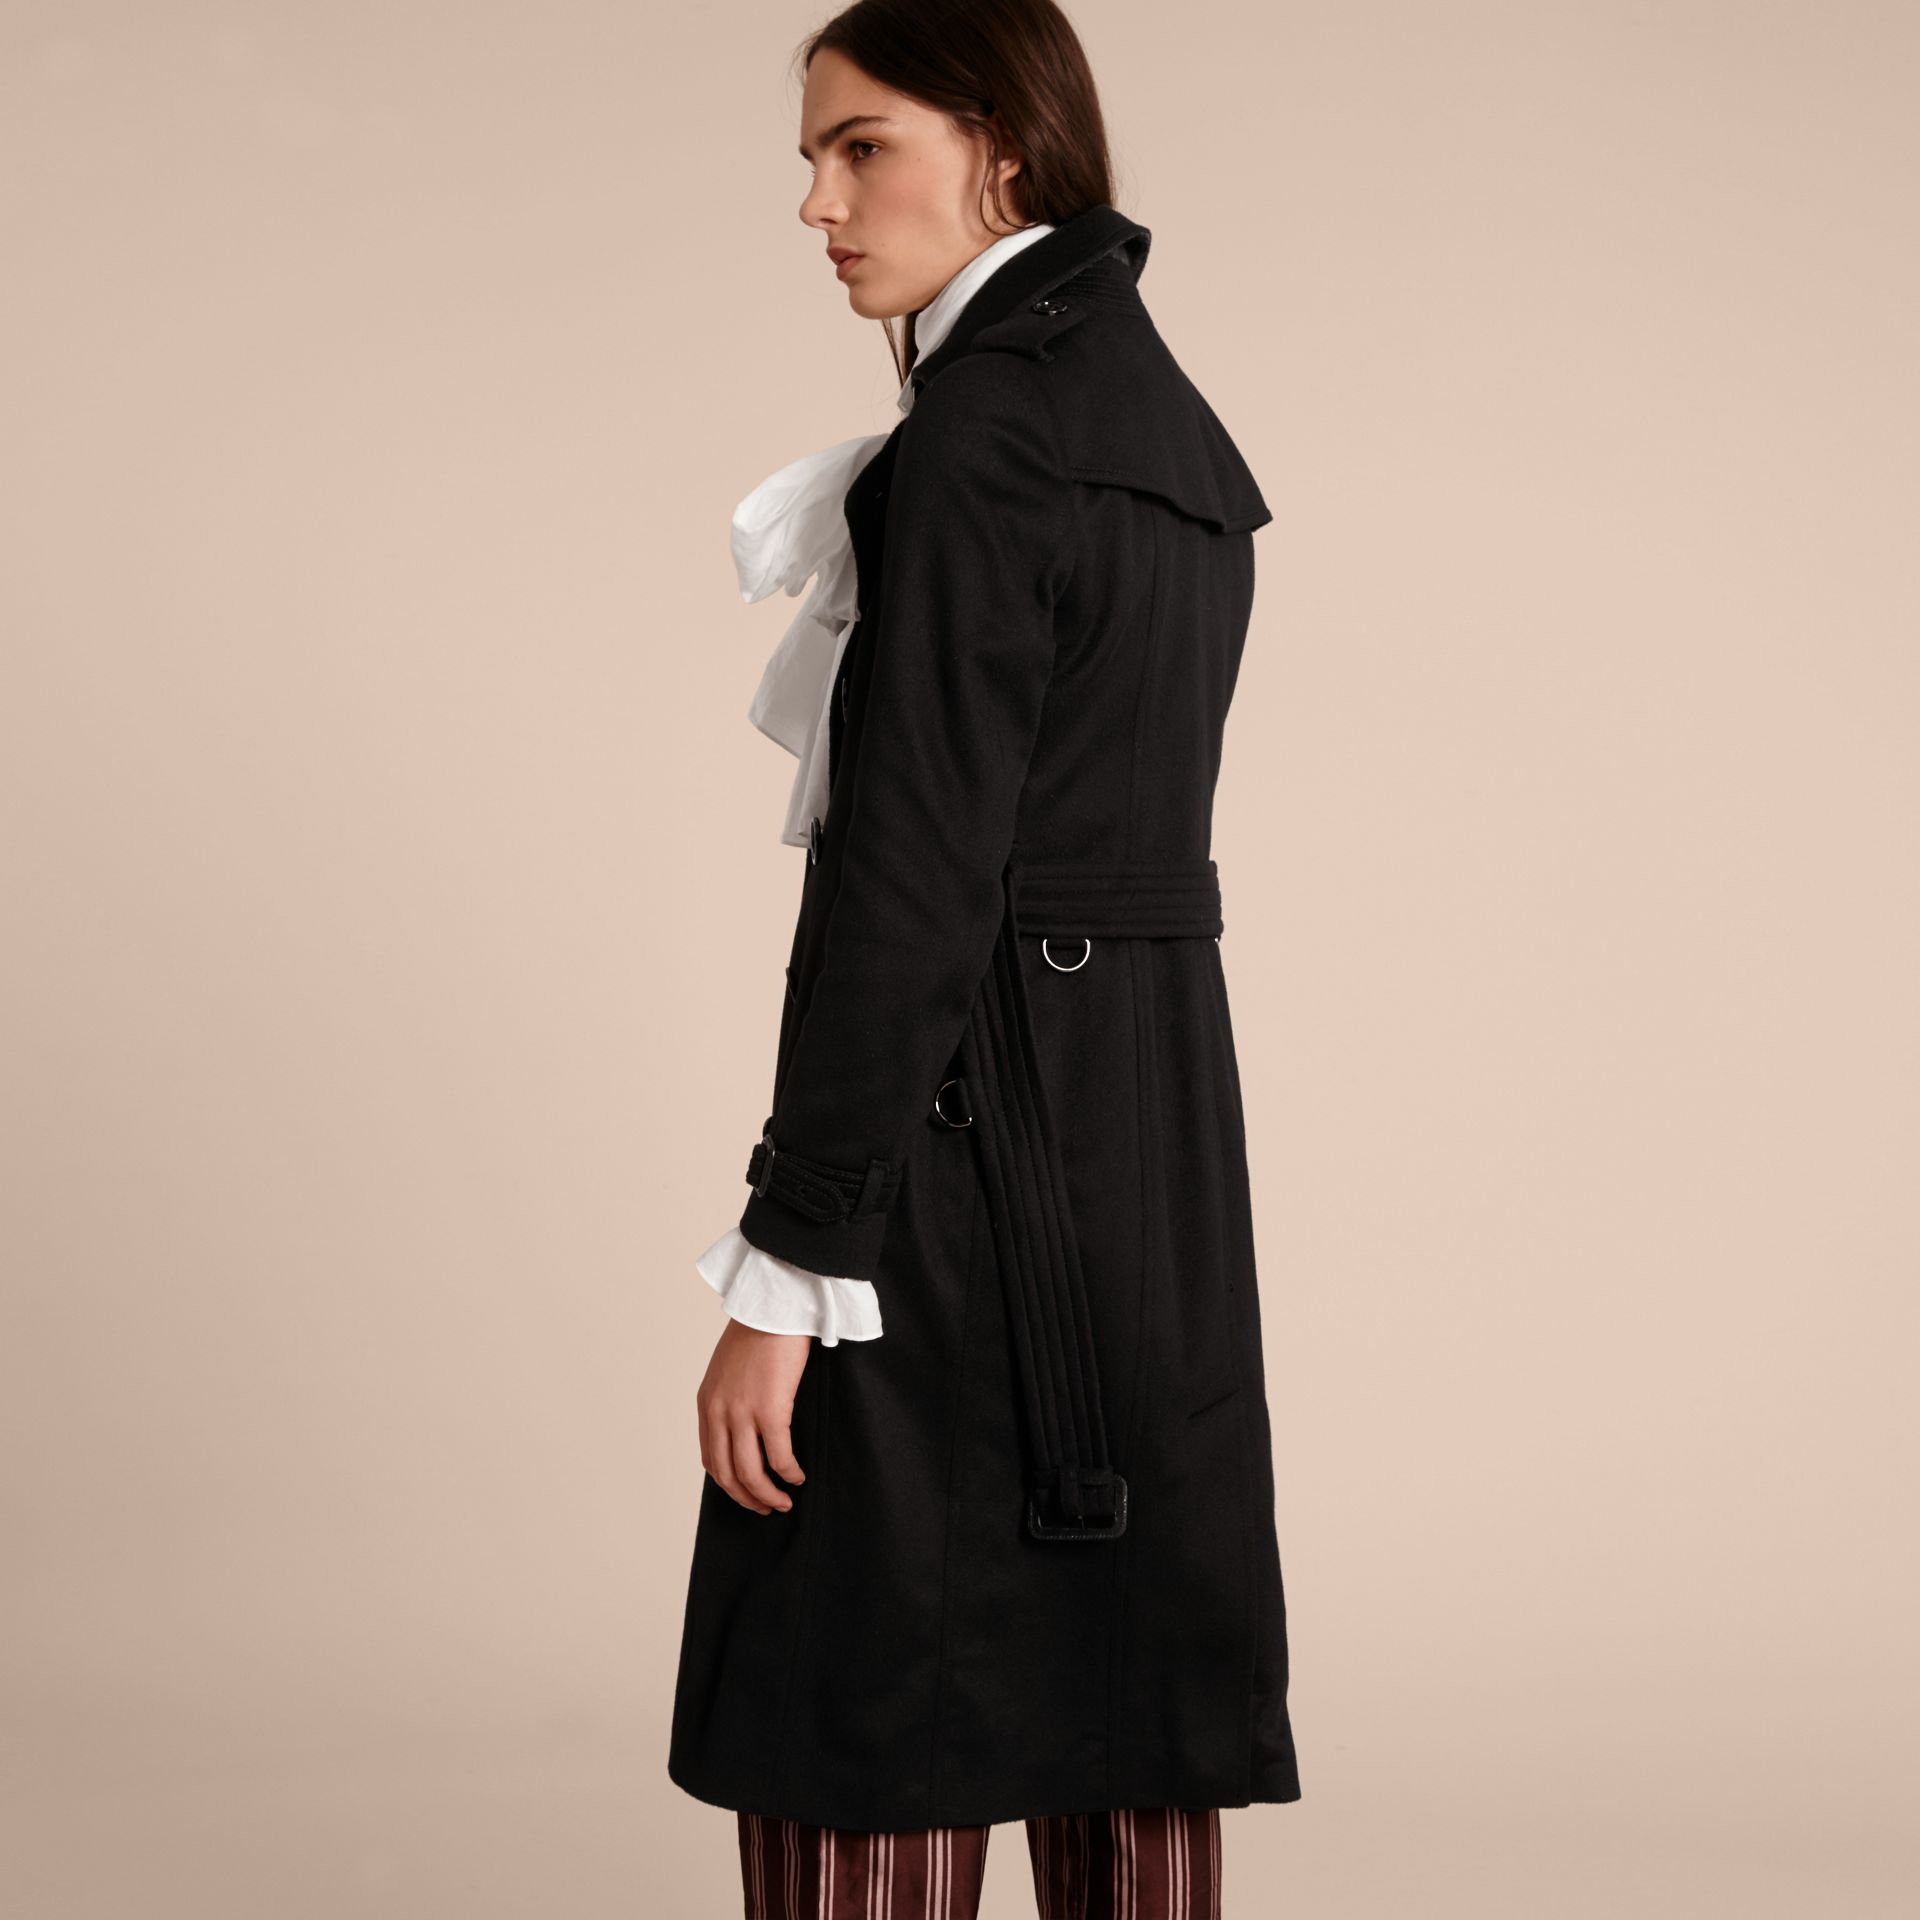 Black Sandringham Fit Cashmere Trench Coat Black - gallery image 3